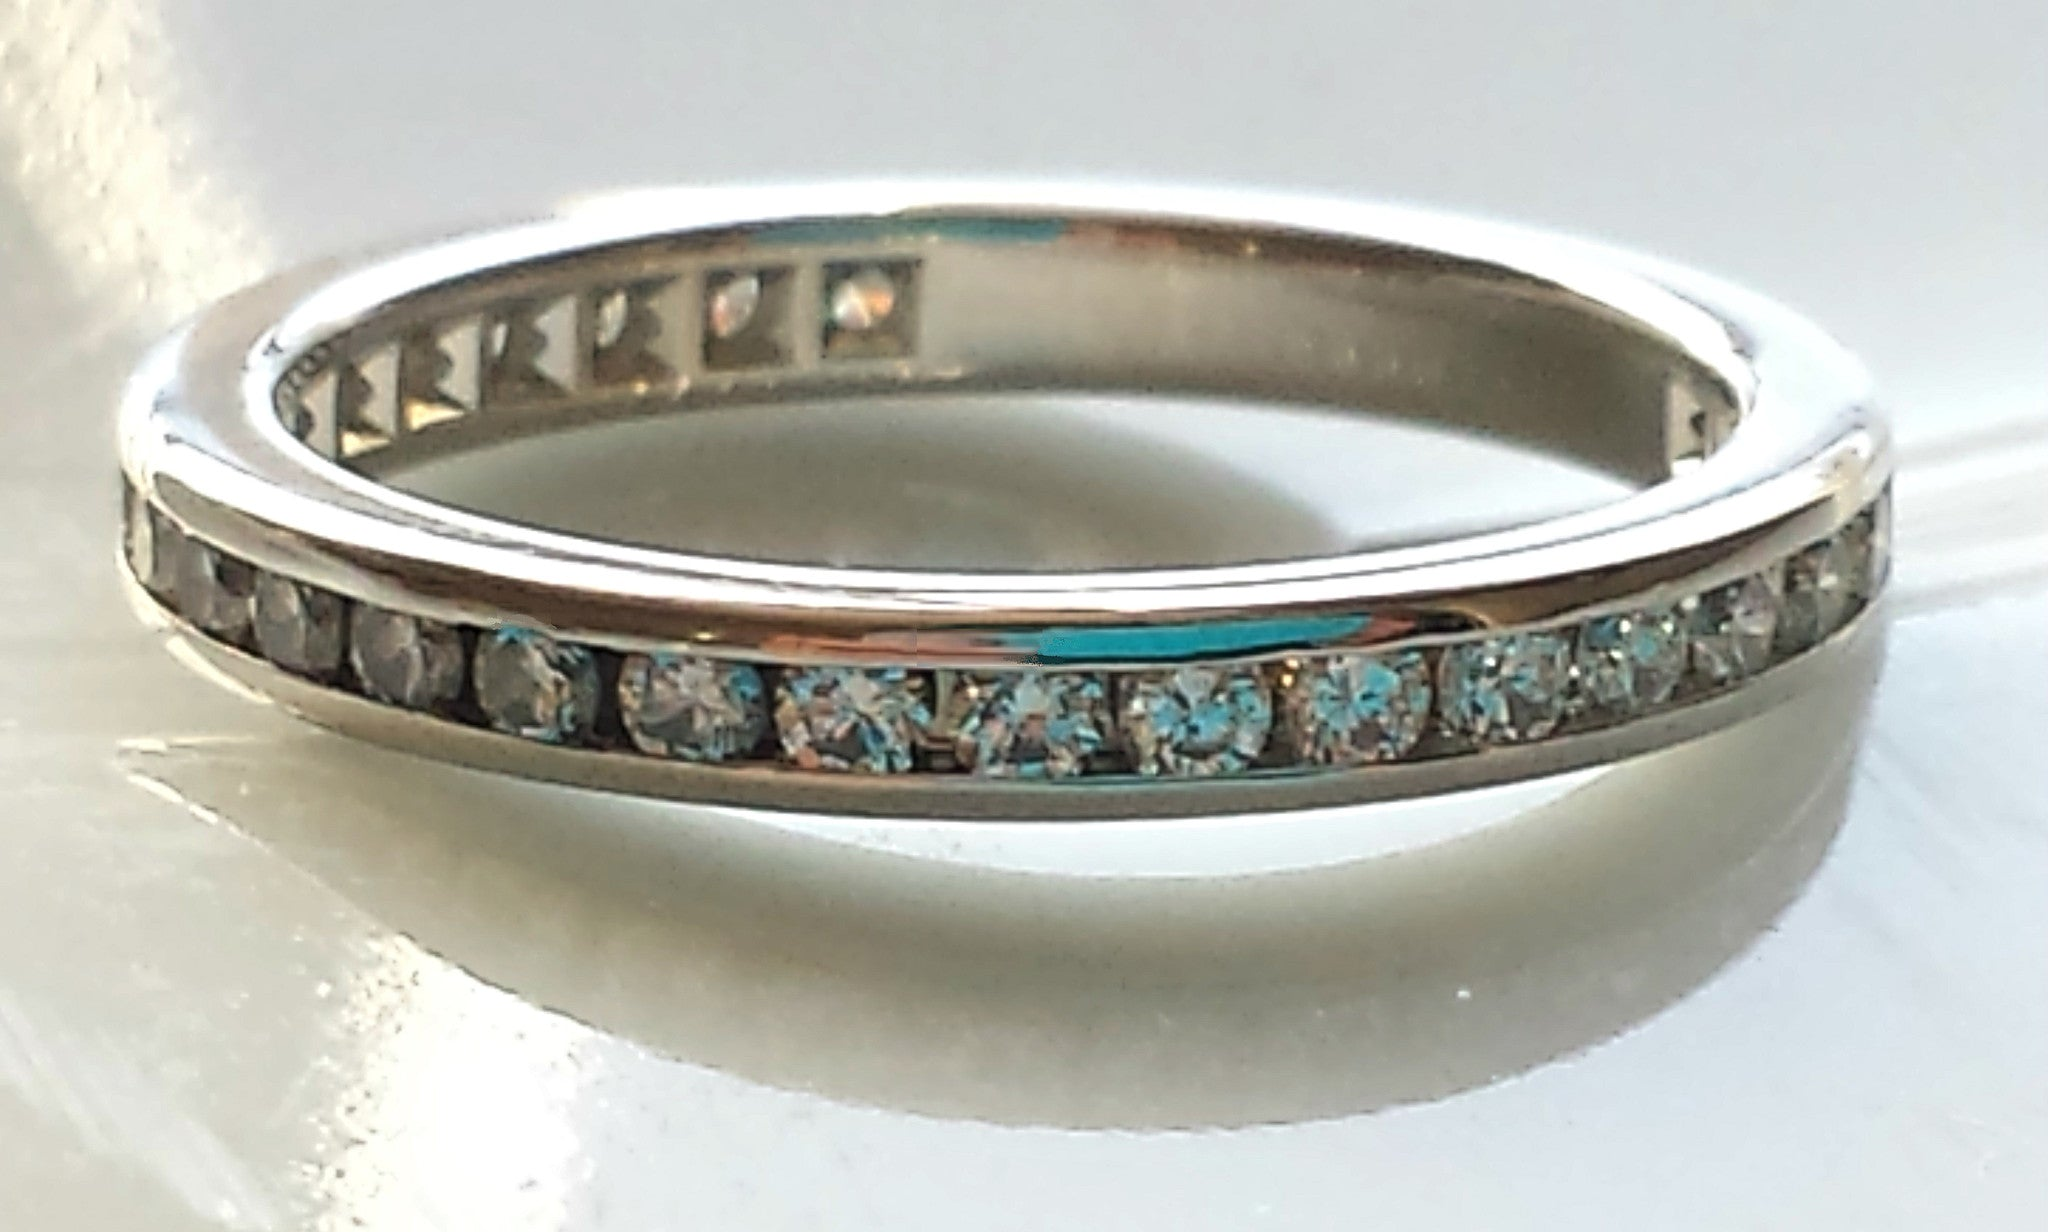 tiffany co 25mm platinum full circle diamond wedding ring size k - Tiffany Wedding Ring